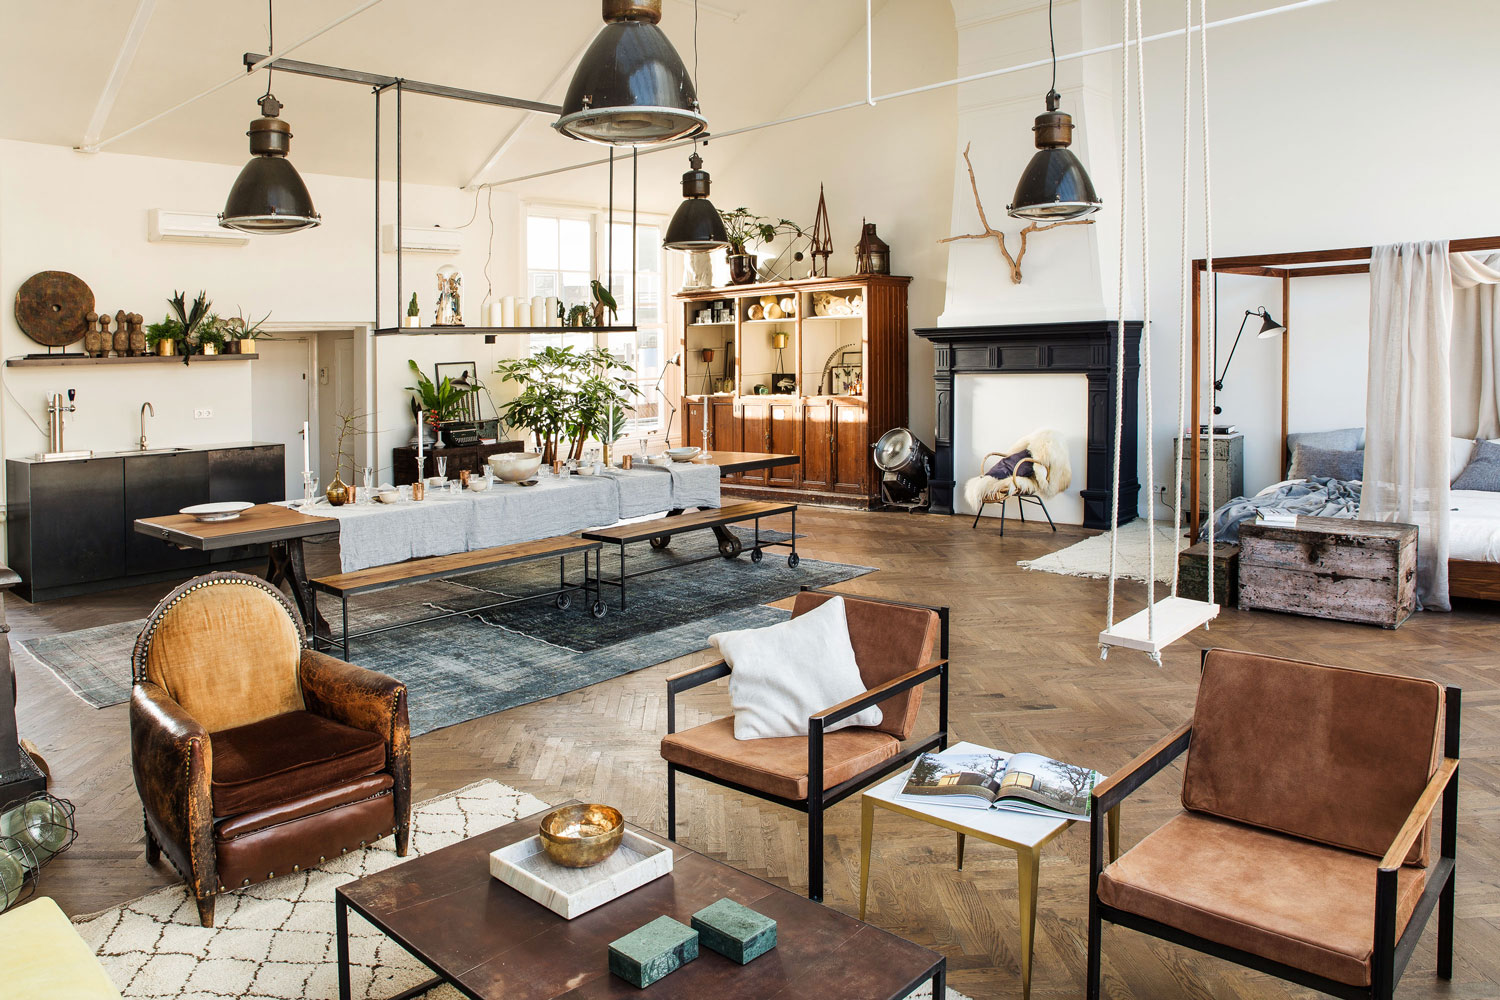 The Loft by Enter The Loft | Yellowtrace